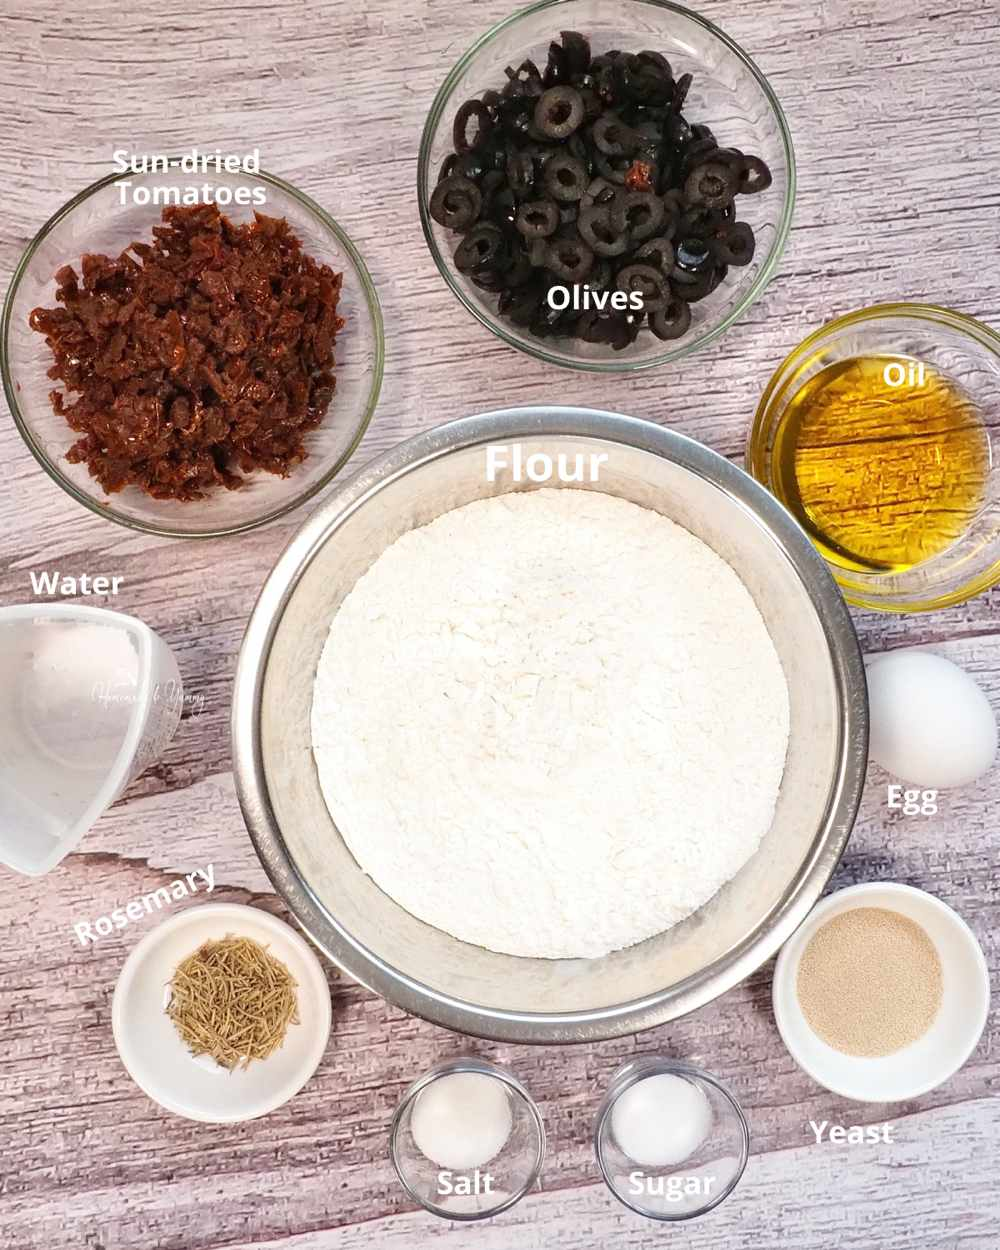 Ingredients to make artisan bread